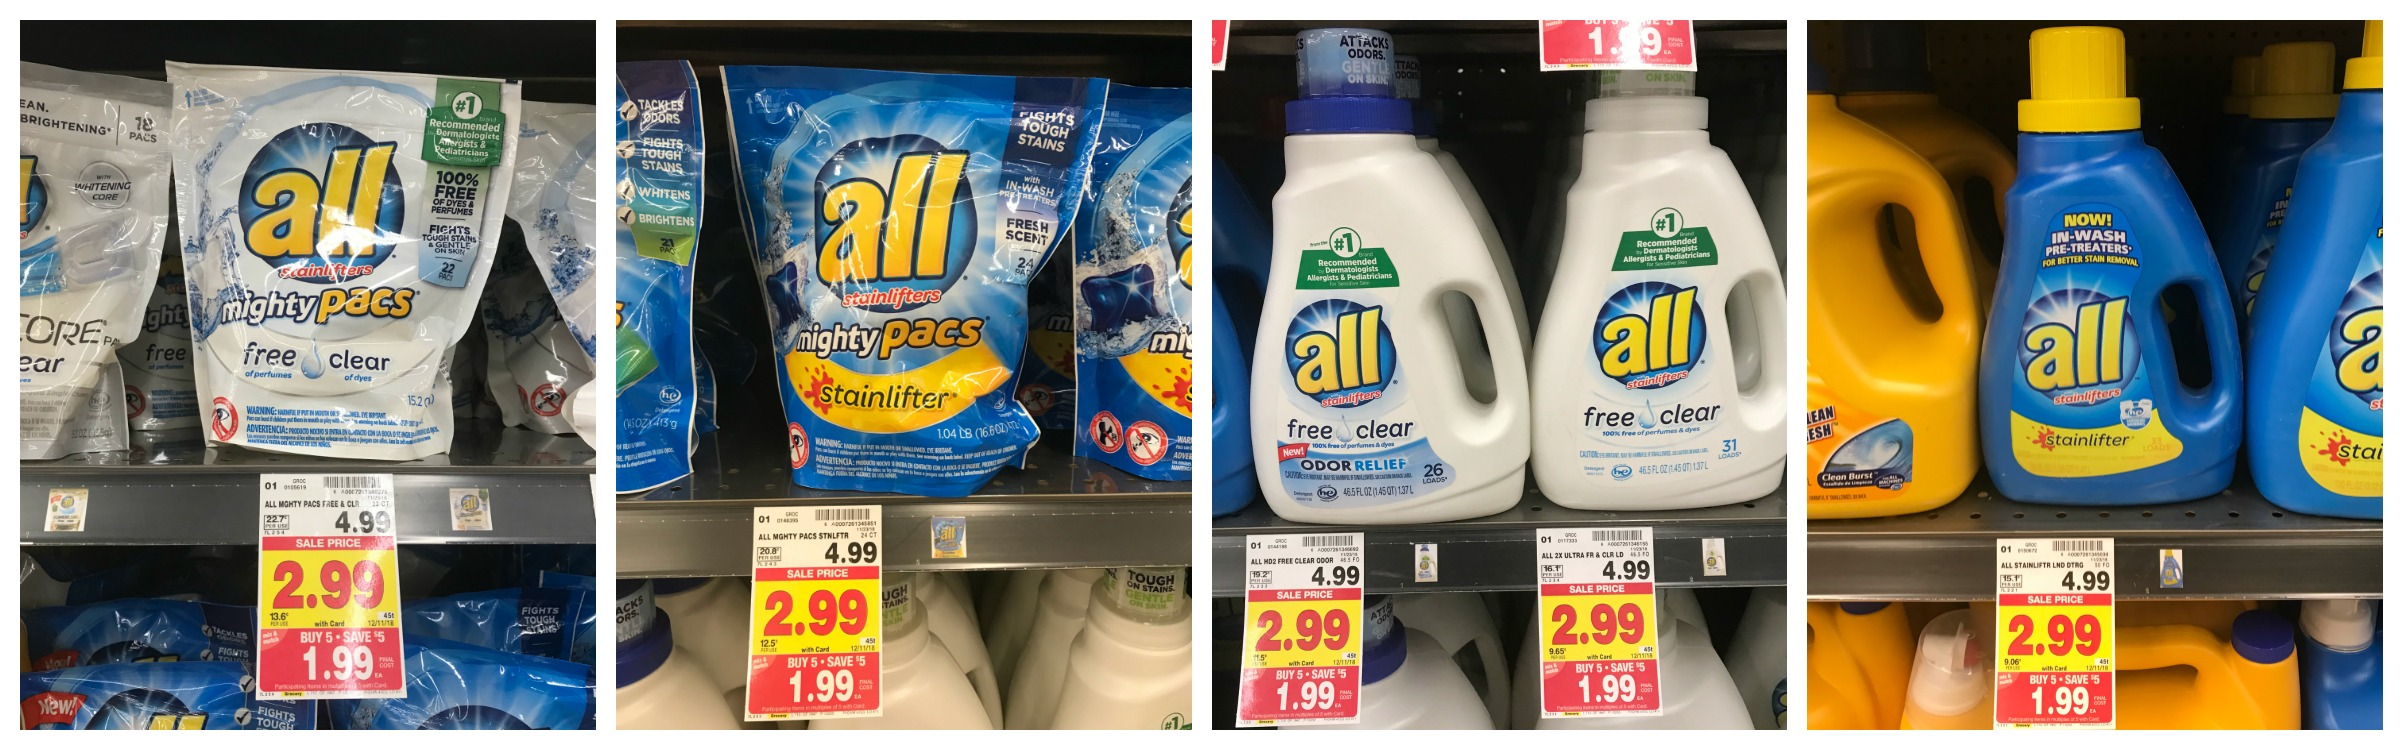 ALL BRAND LAUNDRY DETERGENT